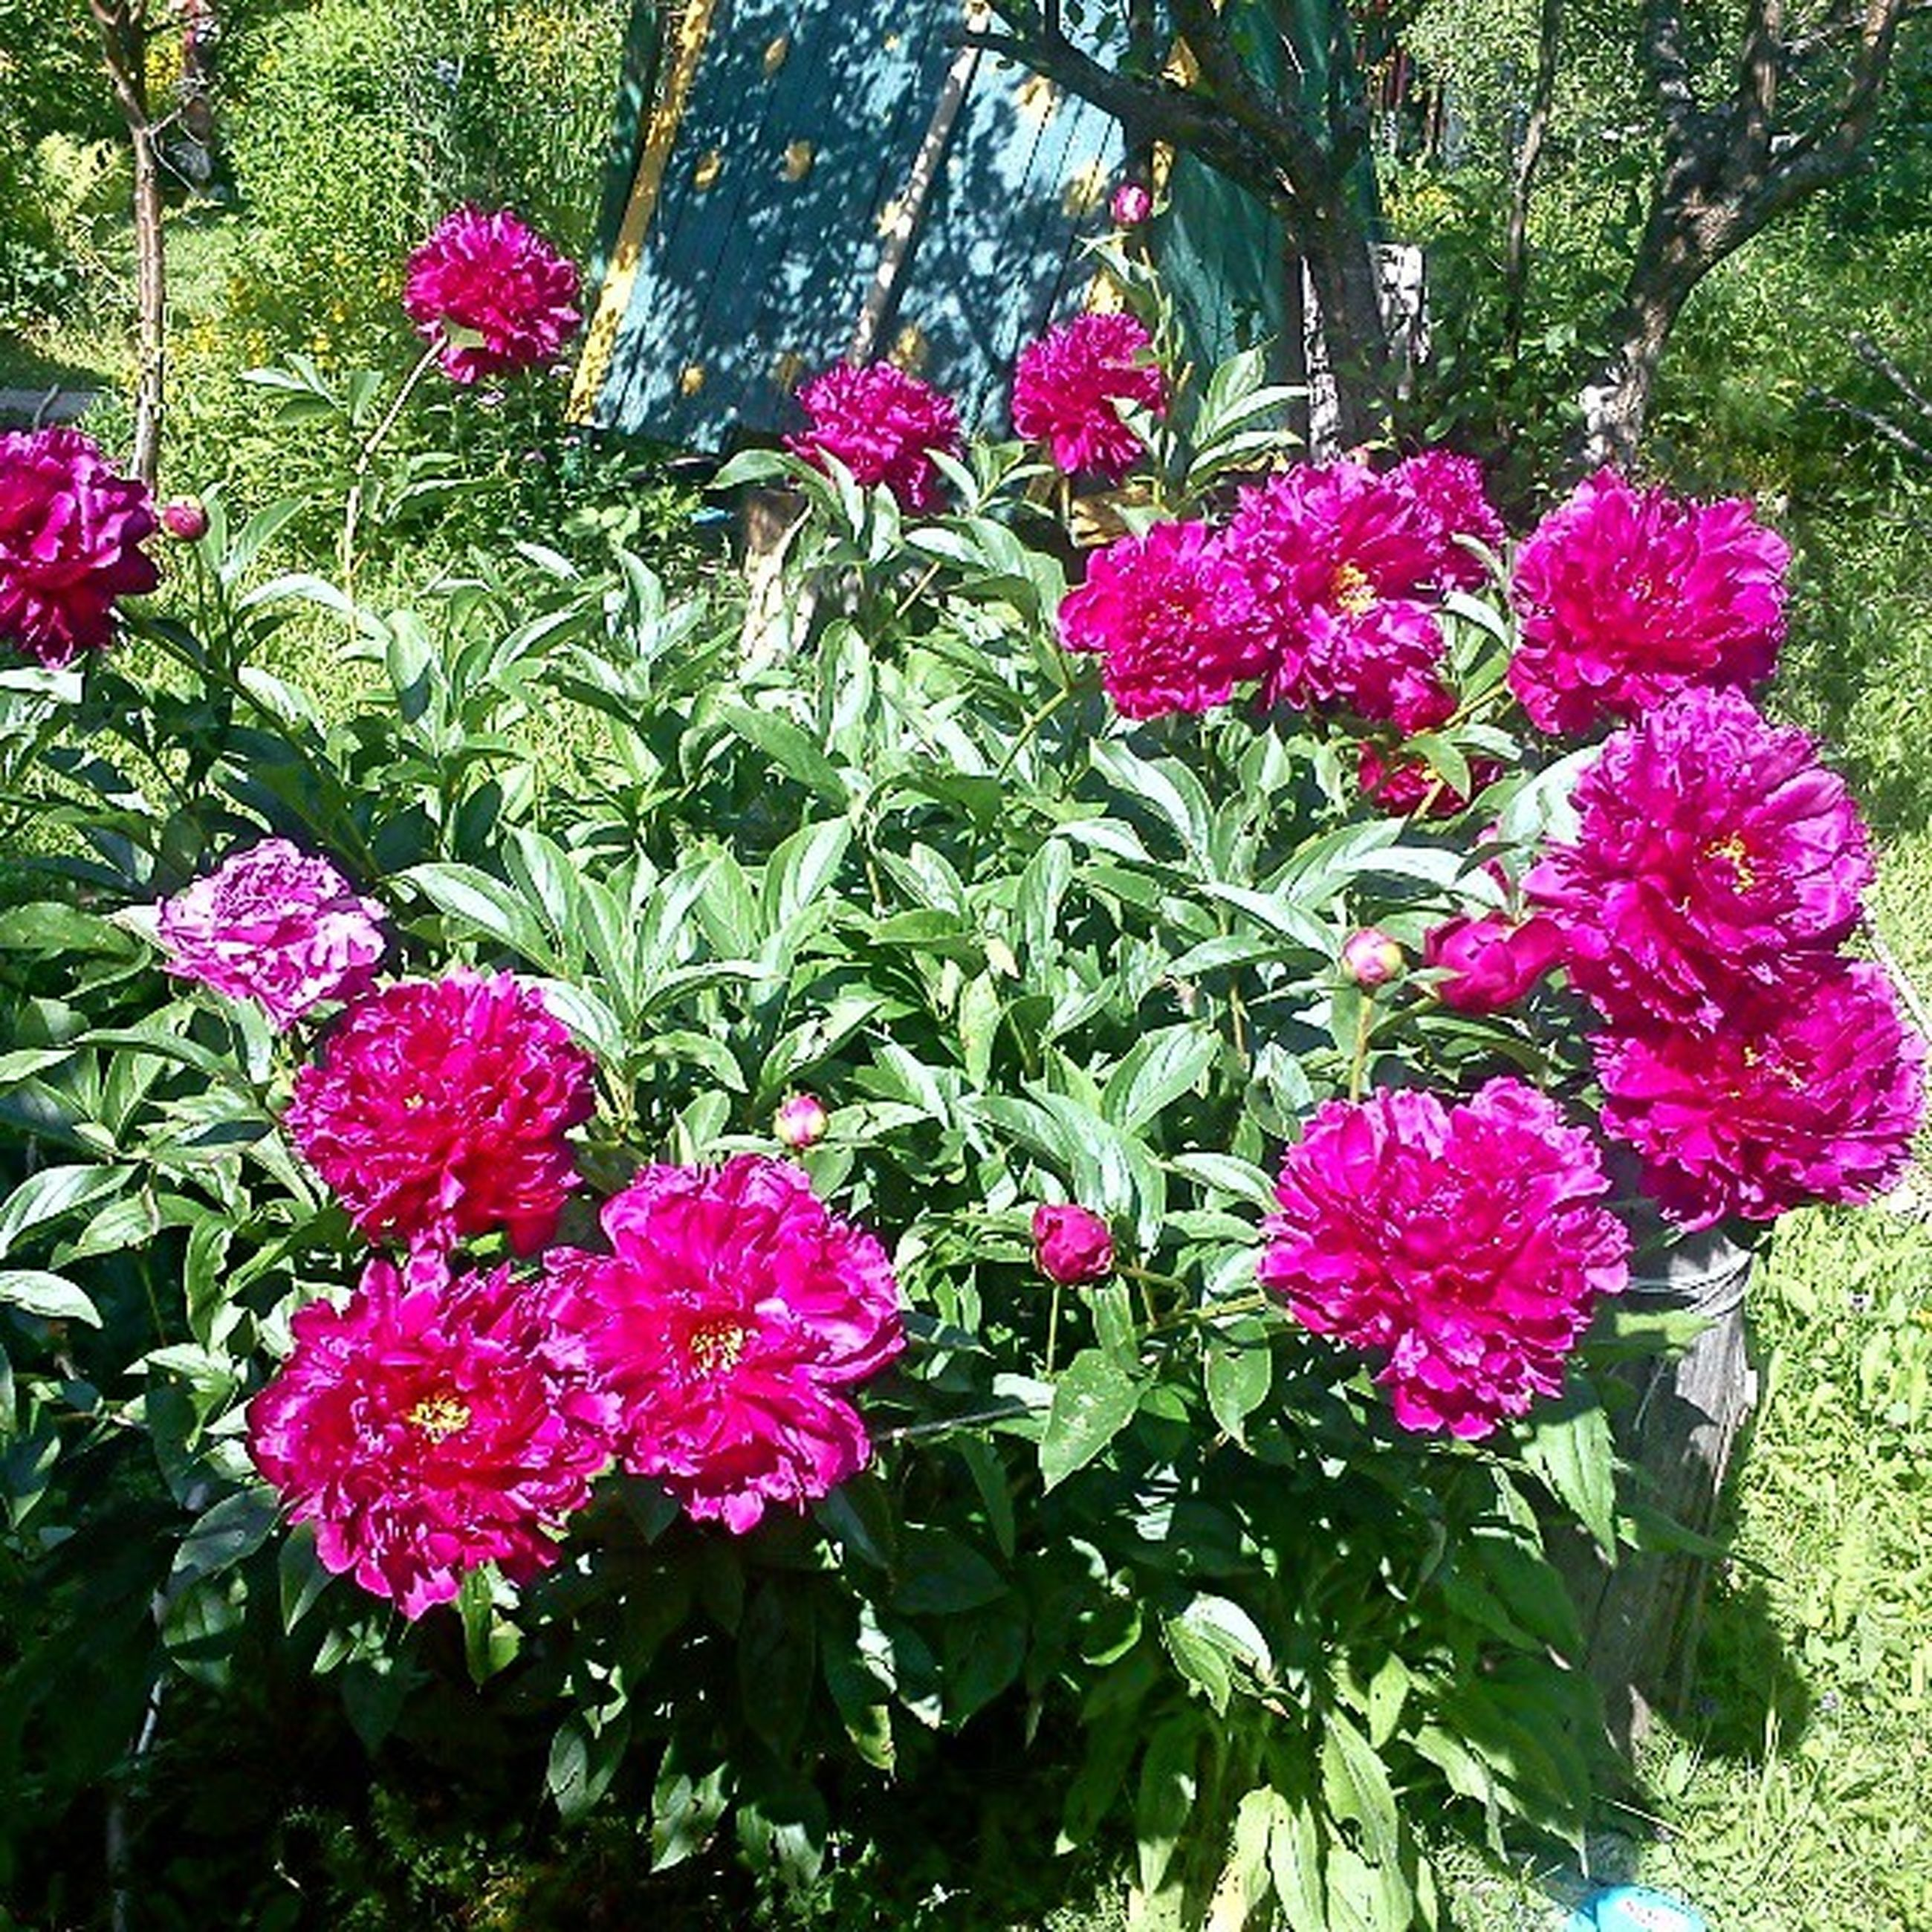 flower, freshness, pink color, growth, fragility, beauty in nature, petal, blooming, plant, nature, leaf, flower head, in bloom, blossom, park - man made space, green color, pink, springtime, day, tree